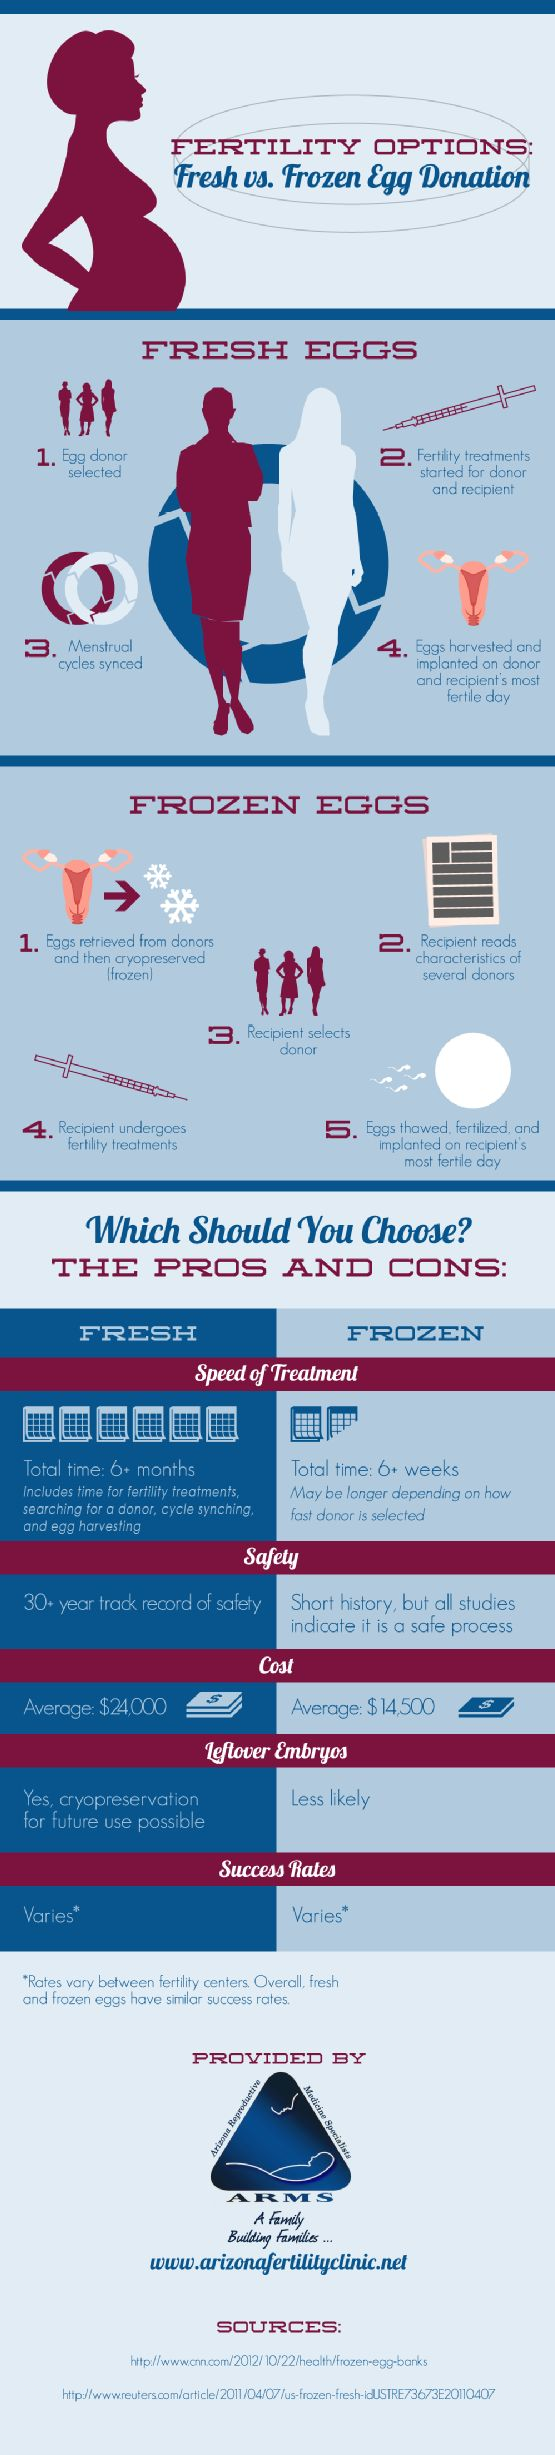 Women struggling with infertility can turn to egg donation to help them start their families. Both fresh and frozen eggs are available. Learn about the differences between these options by checking out this Phoenix fertility clinic infographic.